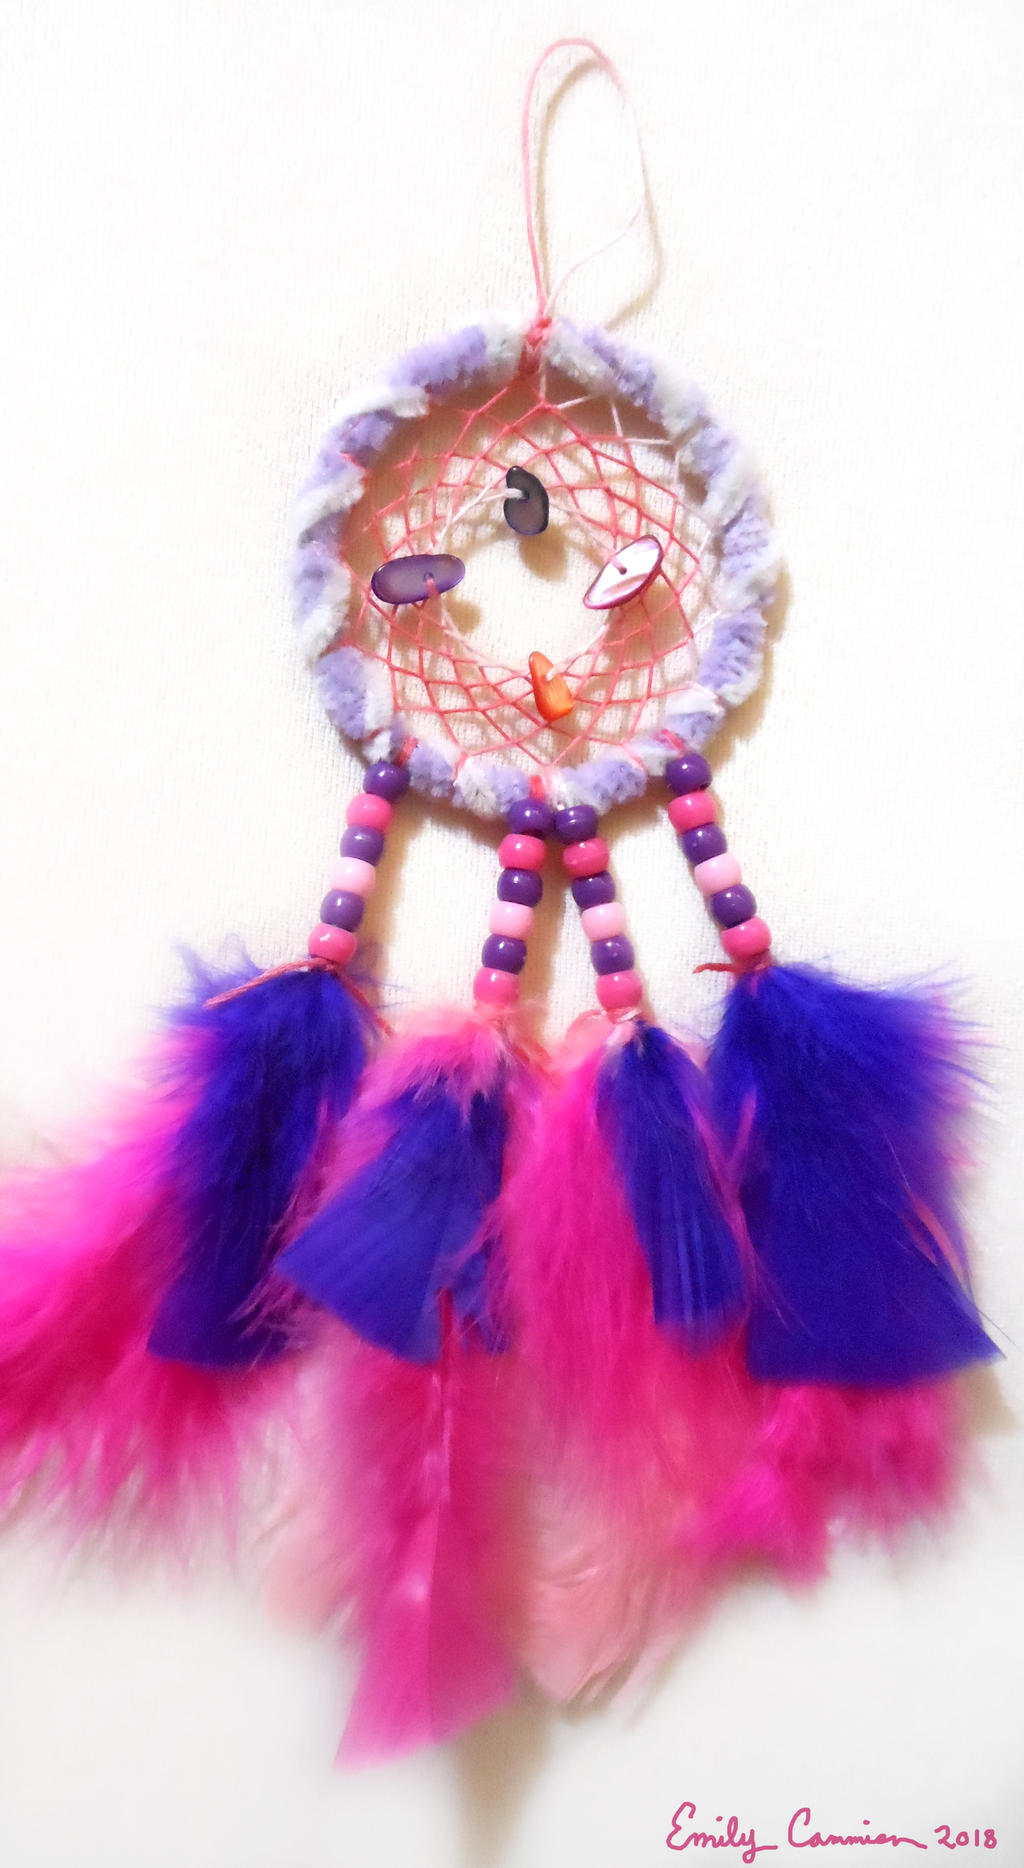 Pink, Purple, and Peppy Dreamcatcher by EmilyCammisa